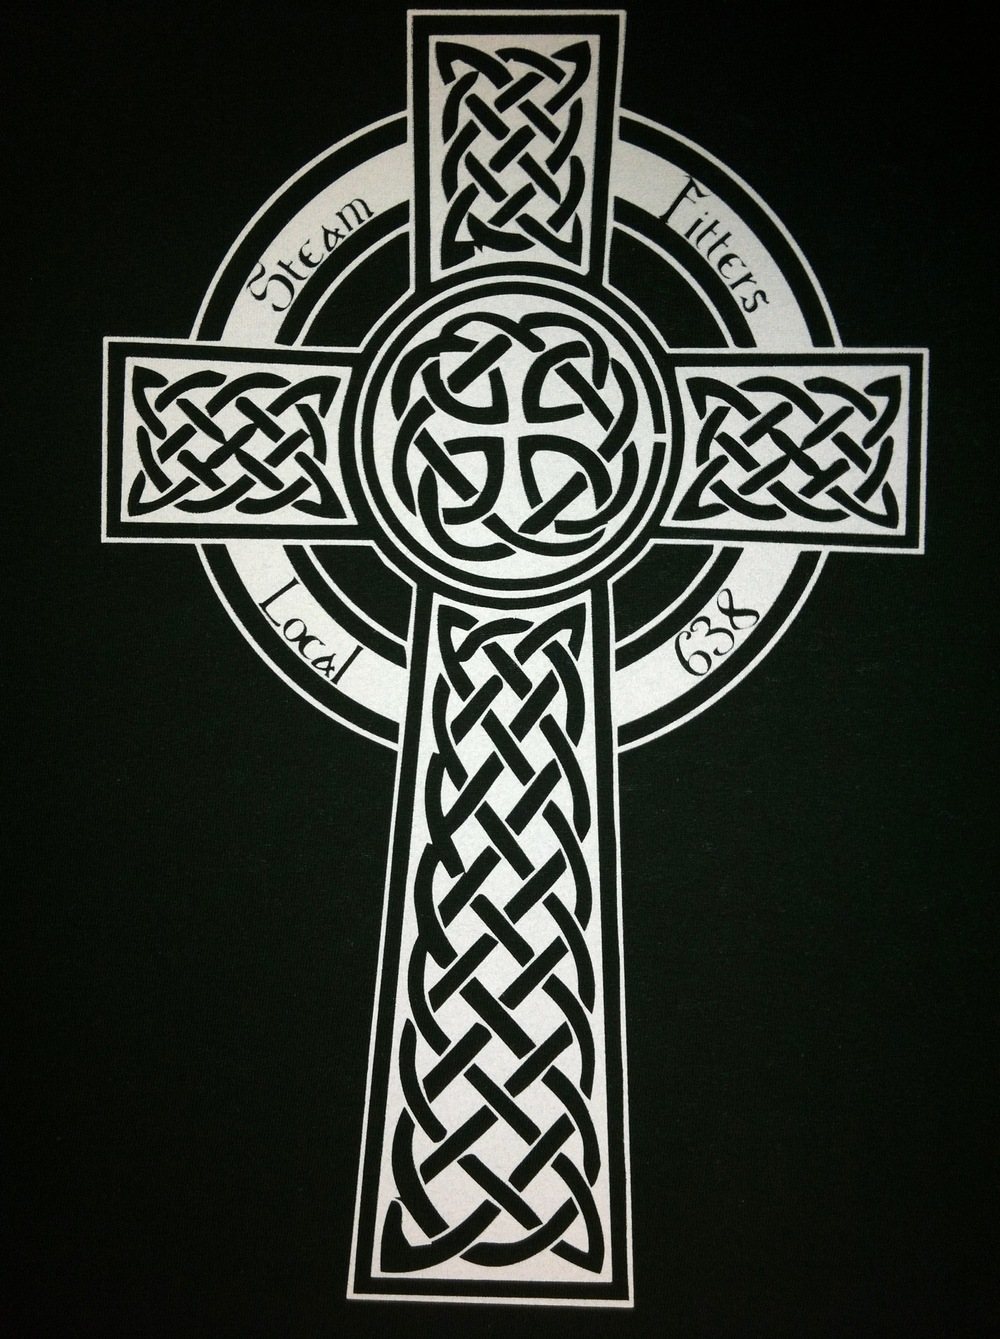 Steam Fitters Union Celtic Cross